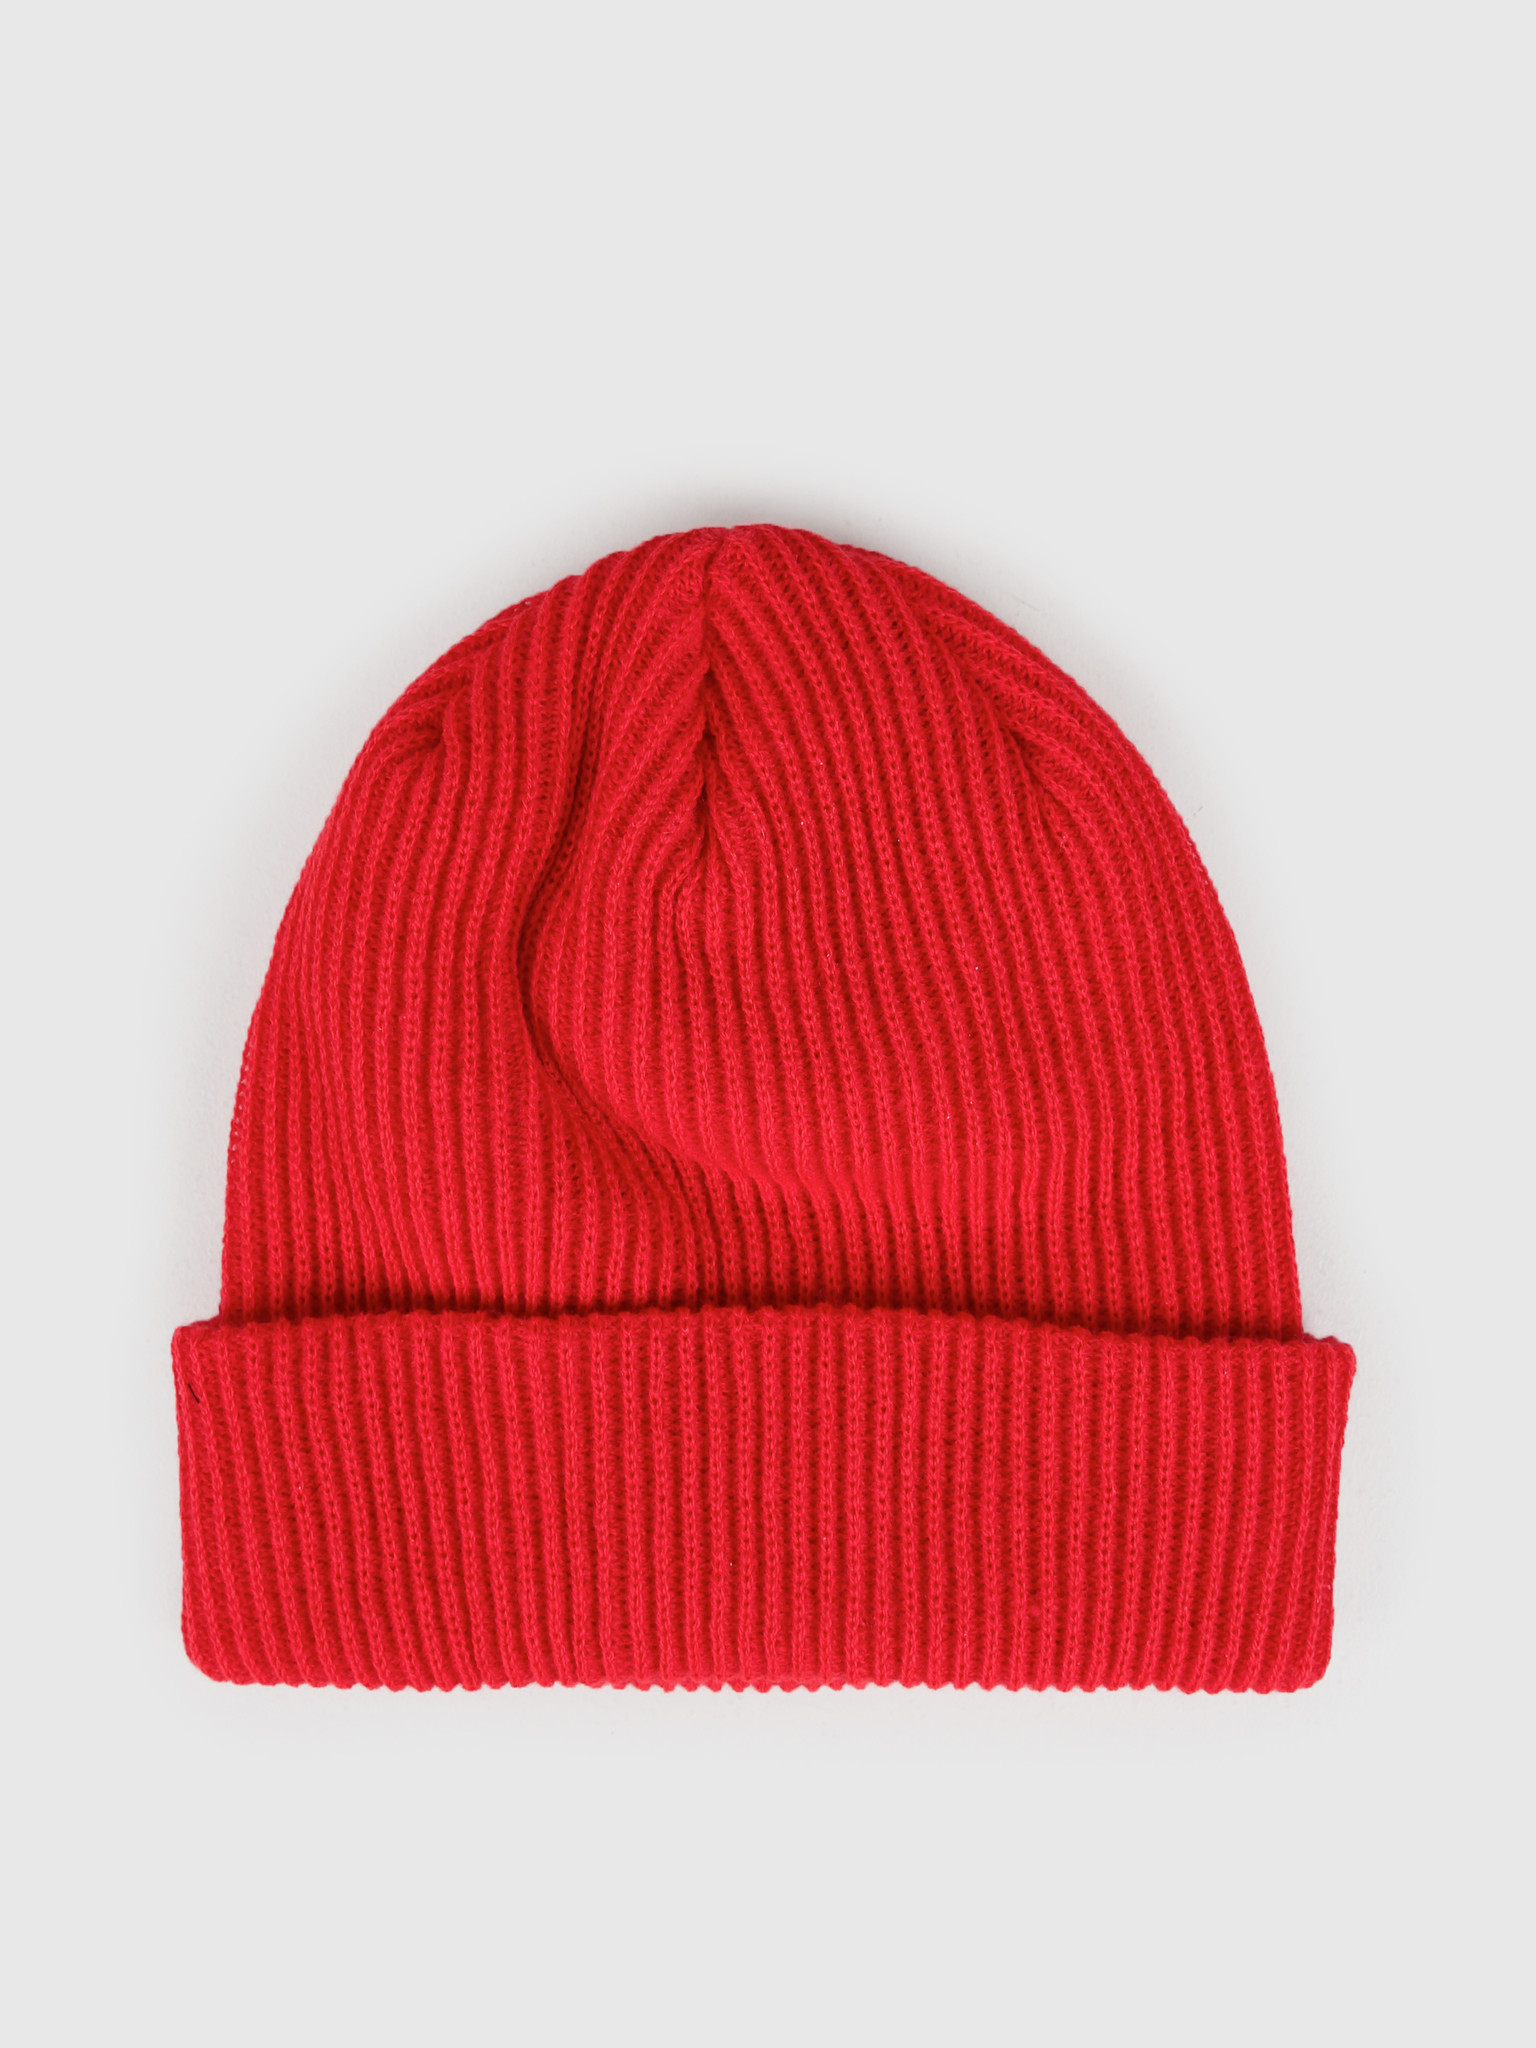 Stussy Stussy Small Patch Watch Cap Beanie Red 132957